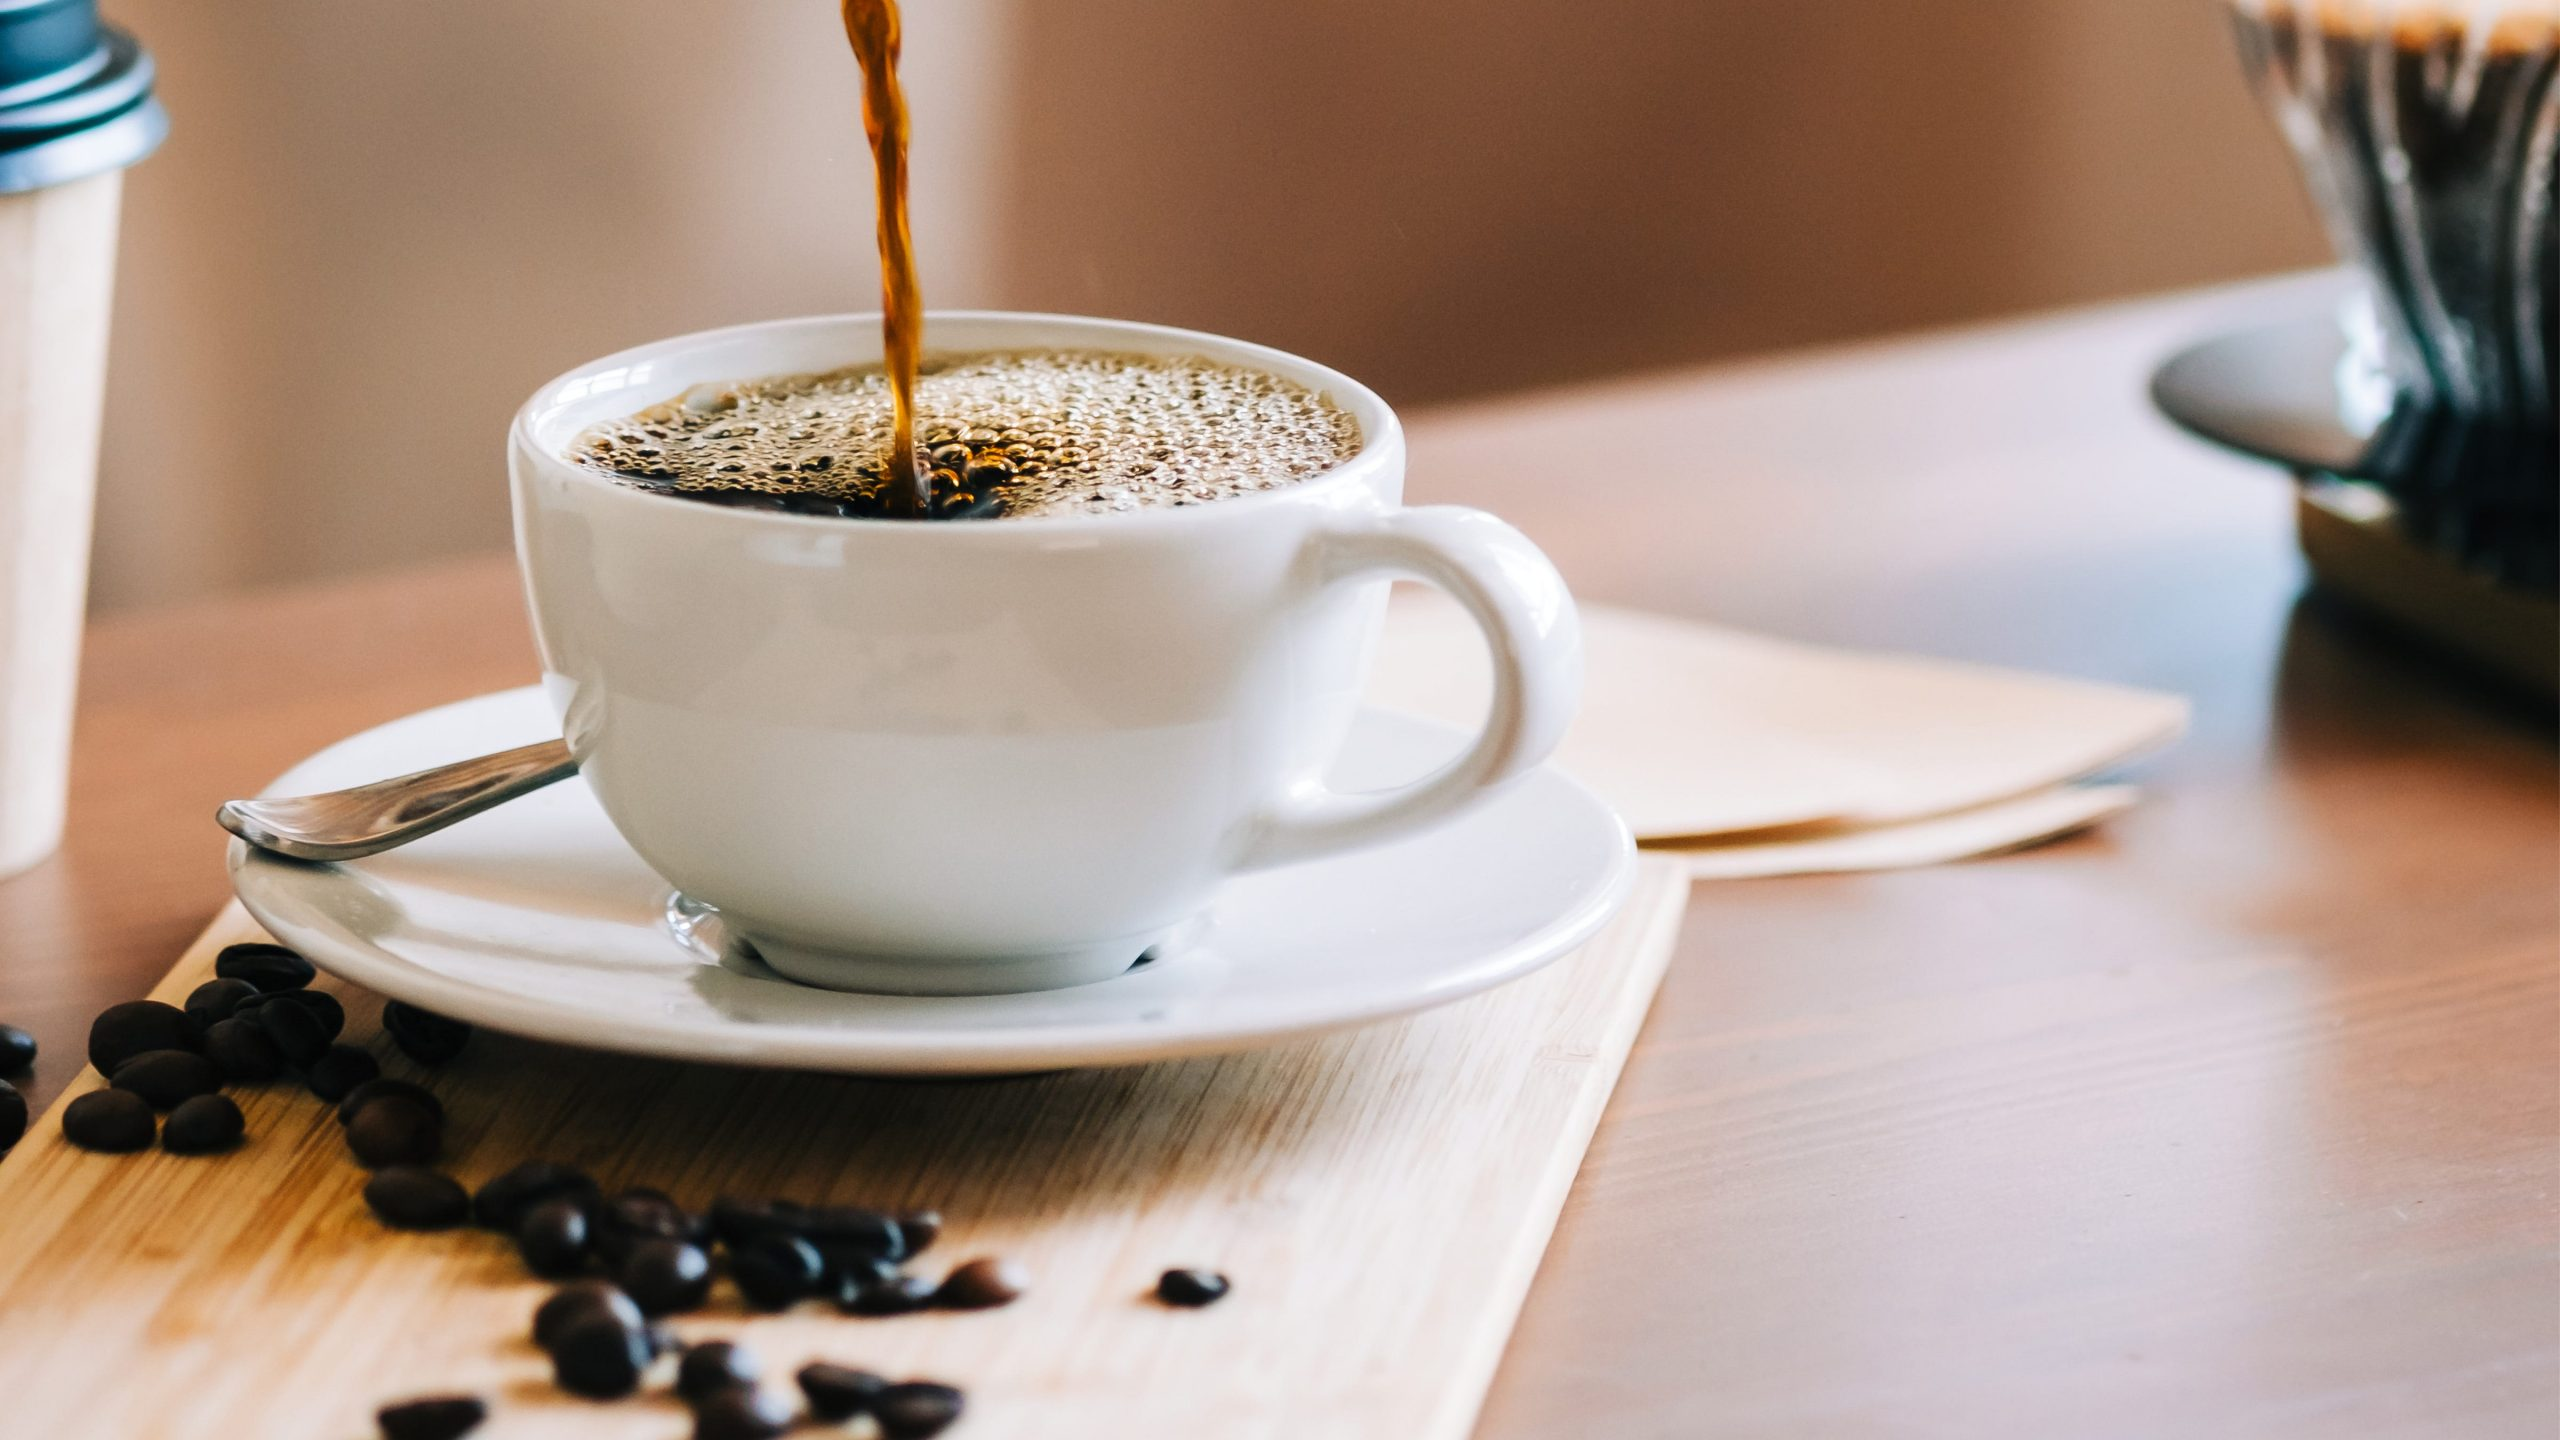 International Coffee Day: Get a deal at McDonald's, plus free coffee at Casey's, Panera and more